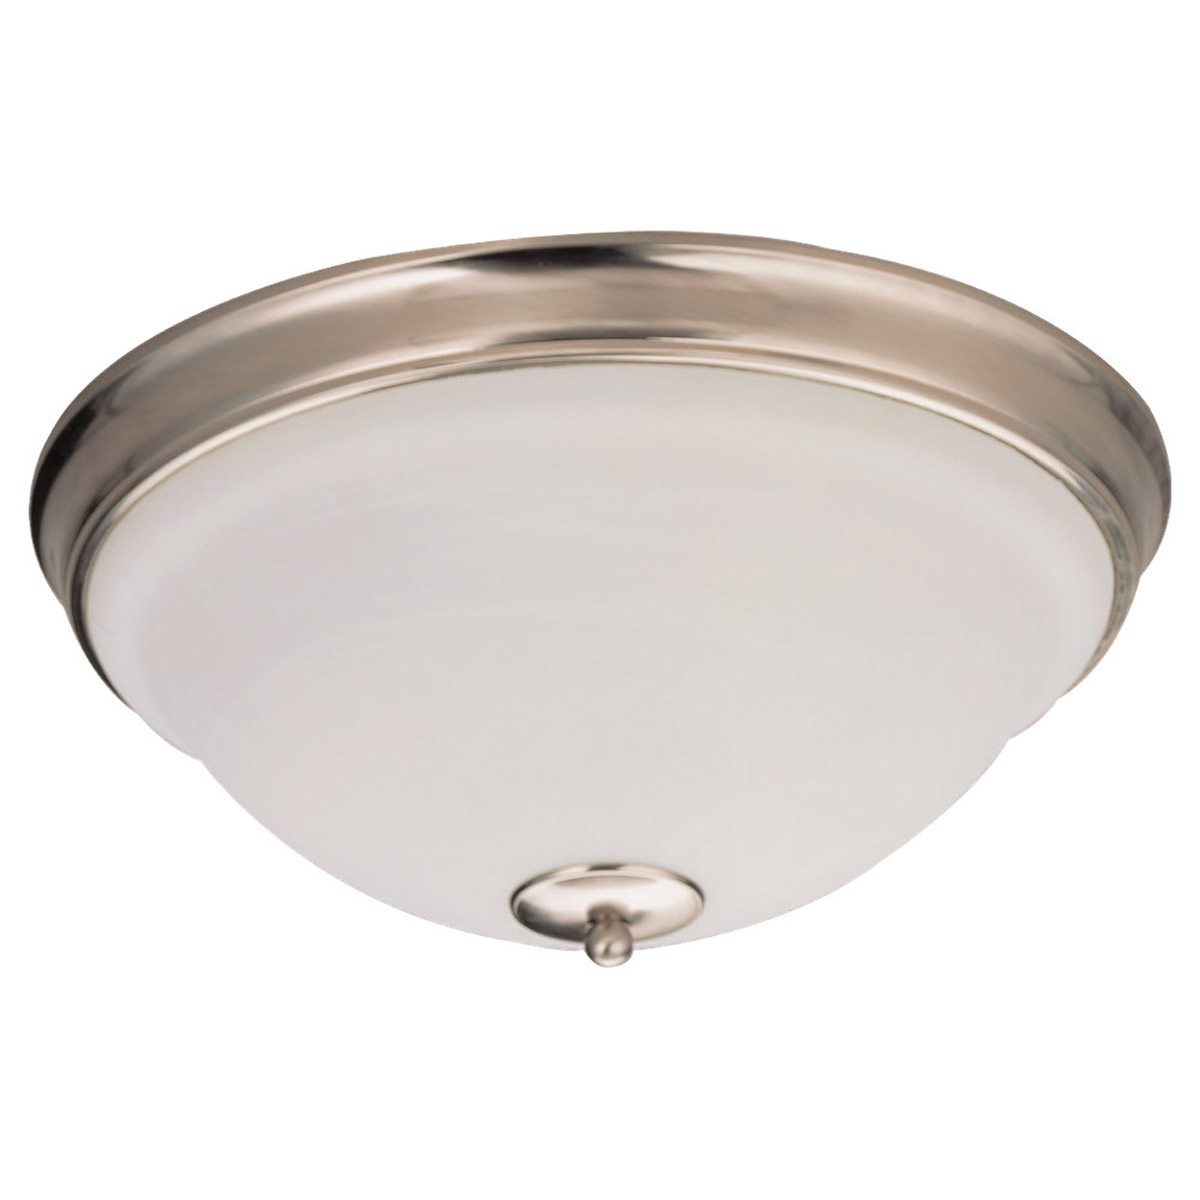 Sea Gull Lighting Serenity 3 Light Flush Mount in Brushed Nickel 79158BLE-962 photo